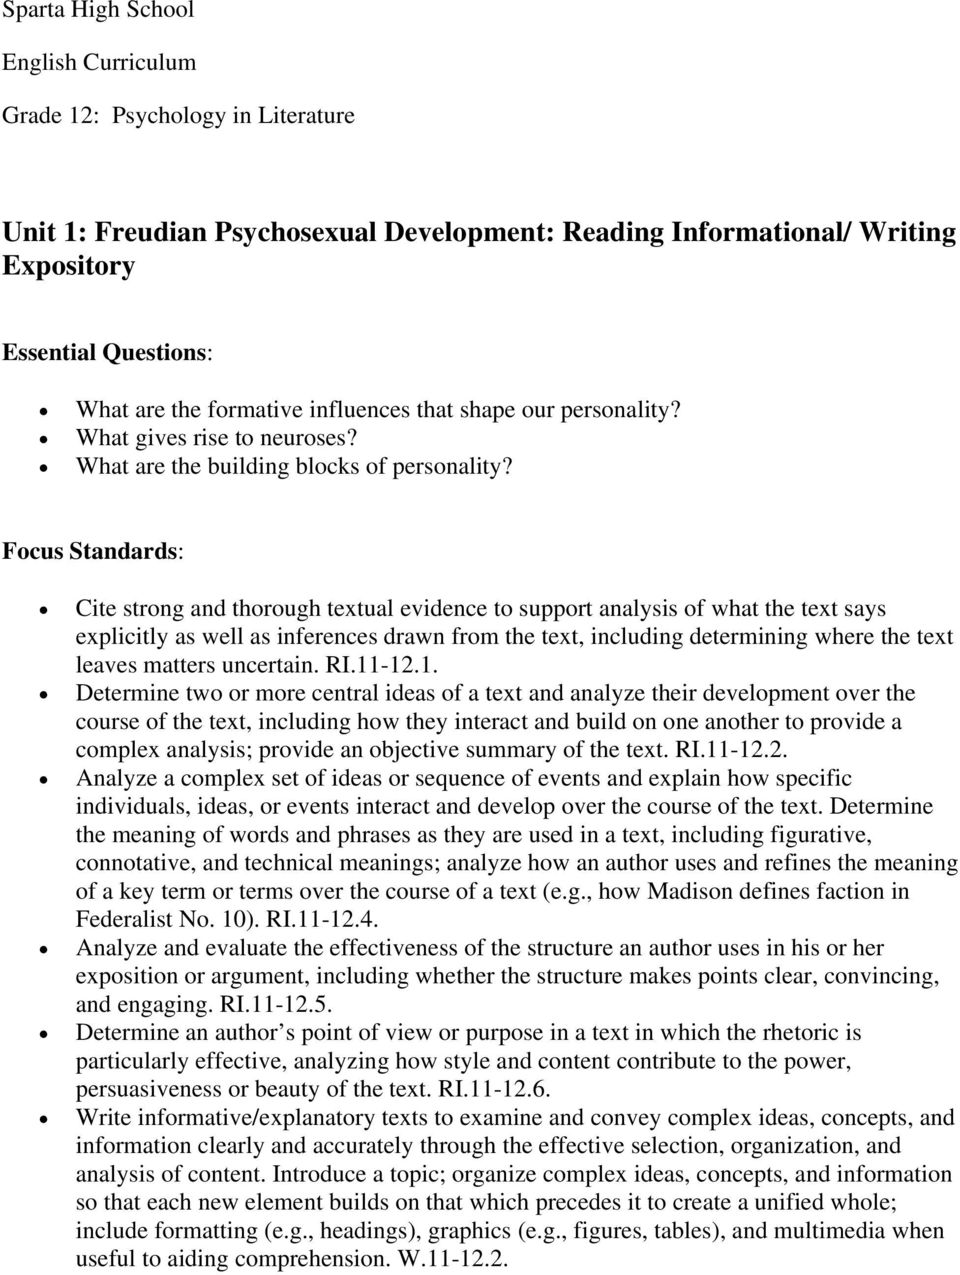 Focus Standards: Cite strong and thorough textual evidence to support analysis of what the text says explicitly as well as inferences drawn from the text, including determining where the text leaves